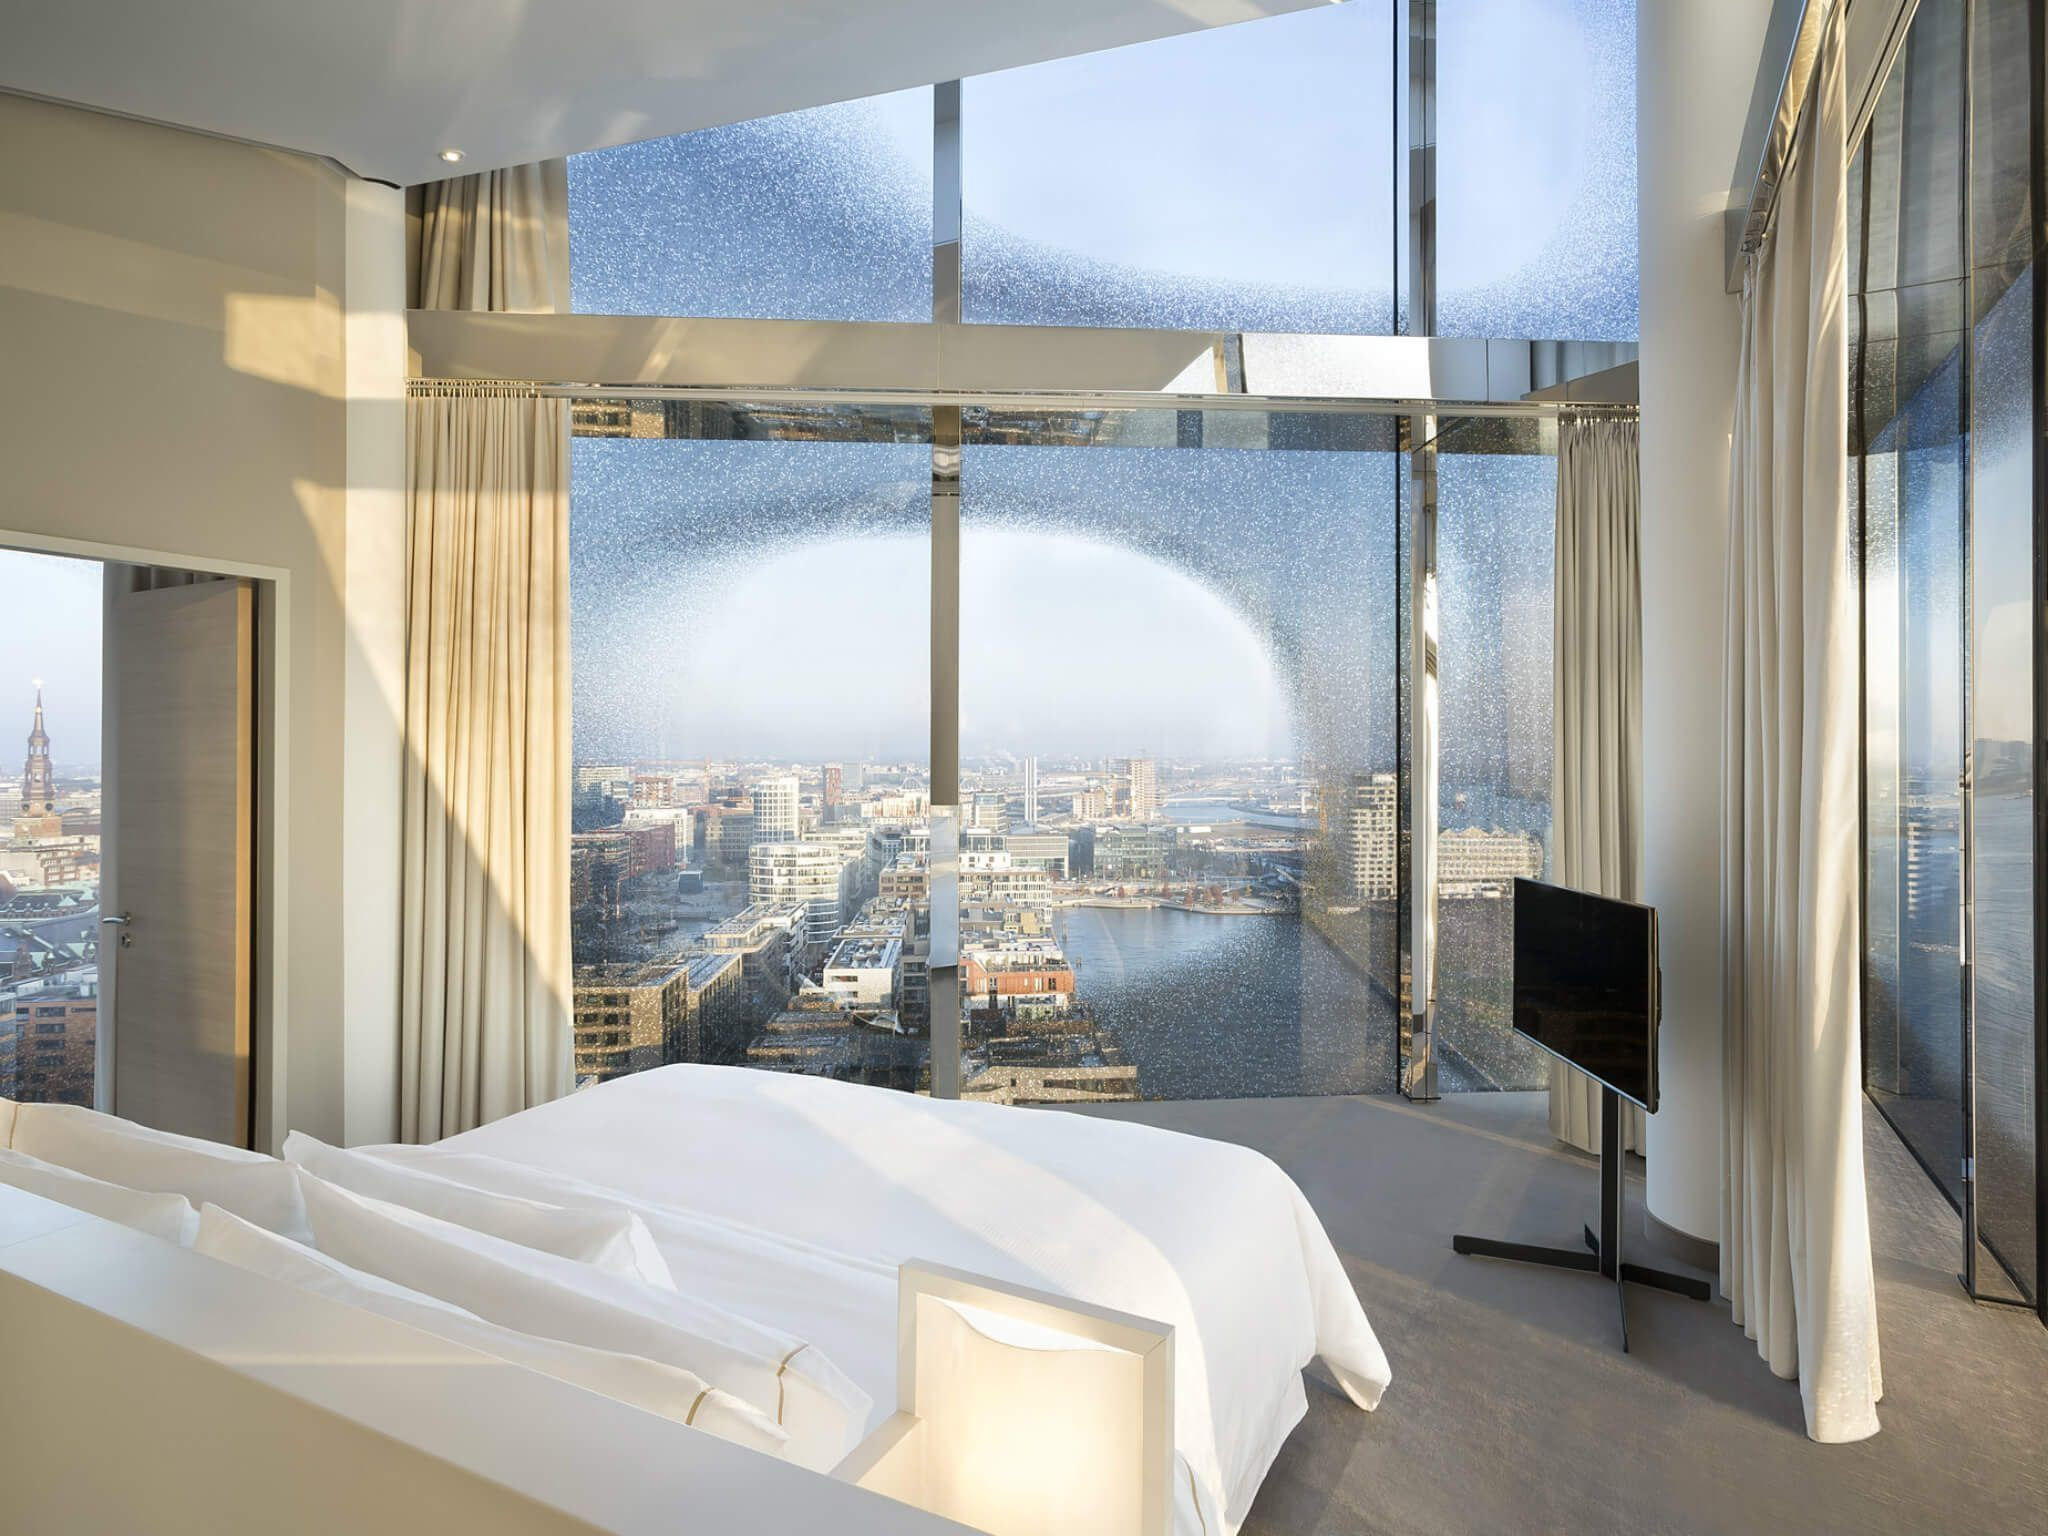 The Westin Hotel in Hamburg, Elbphilharmonie